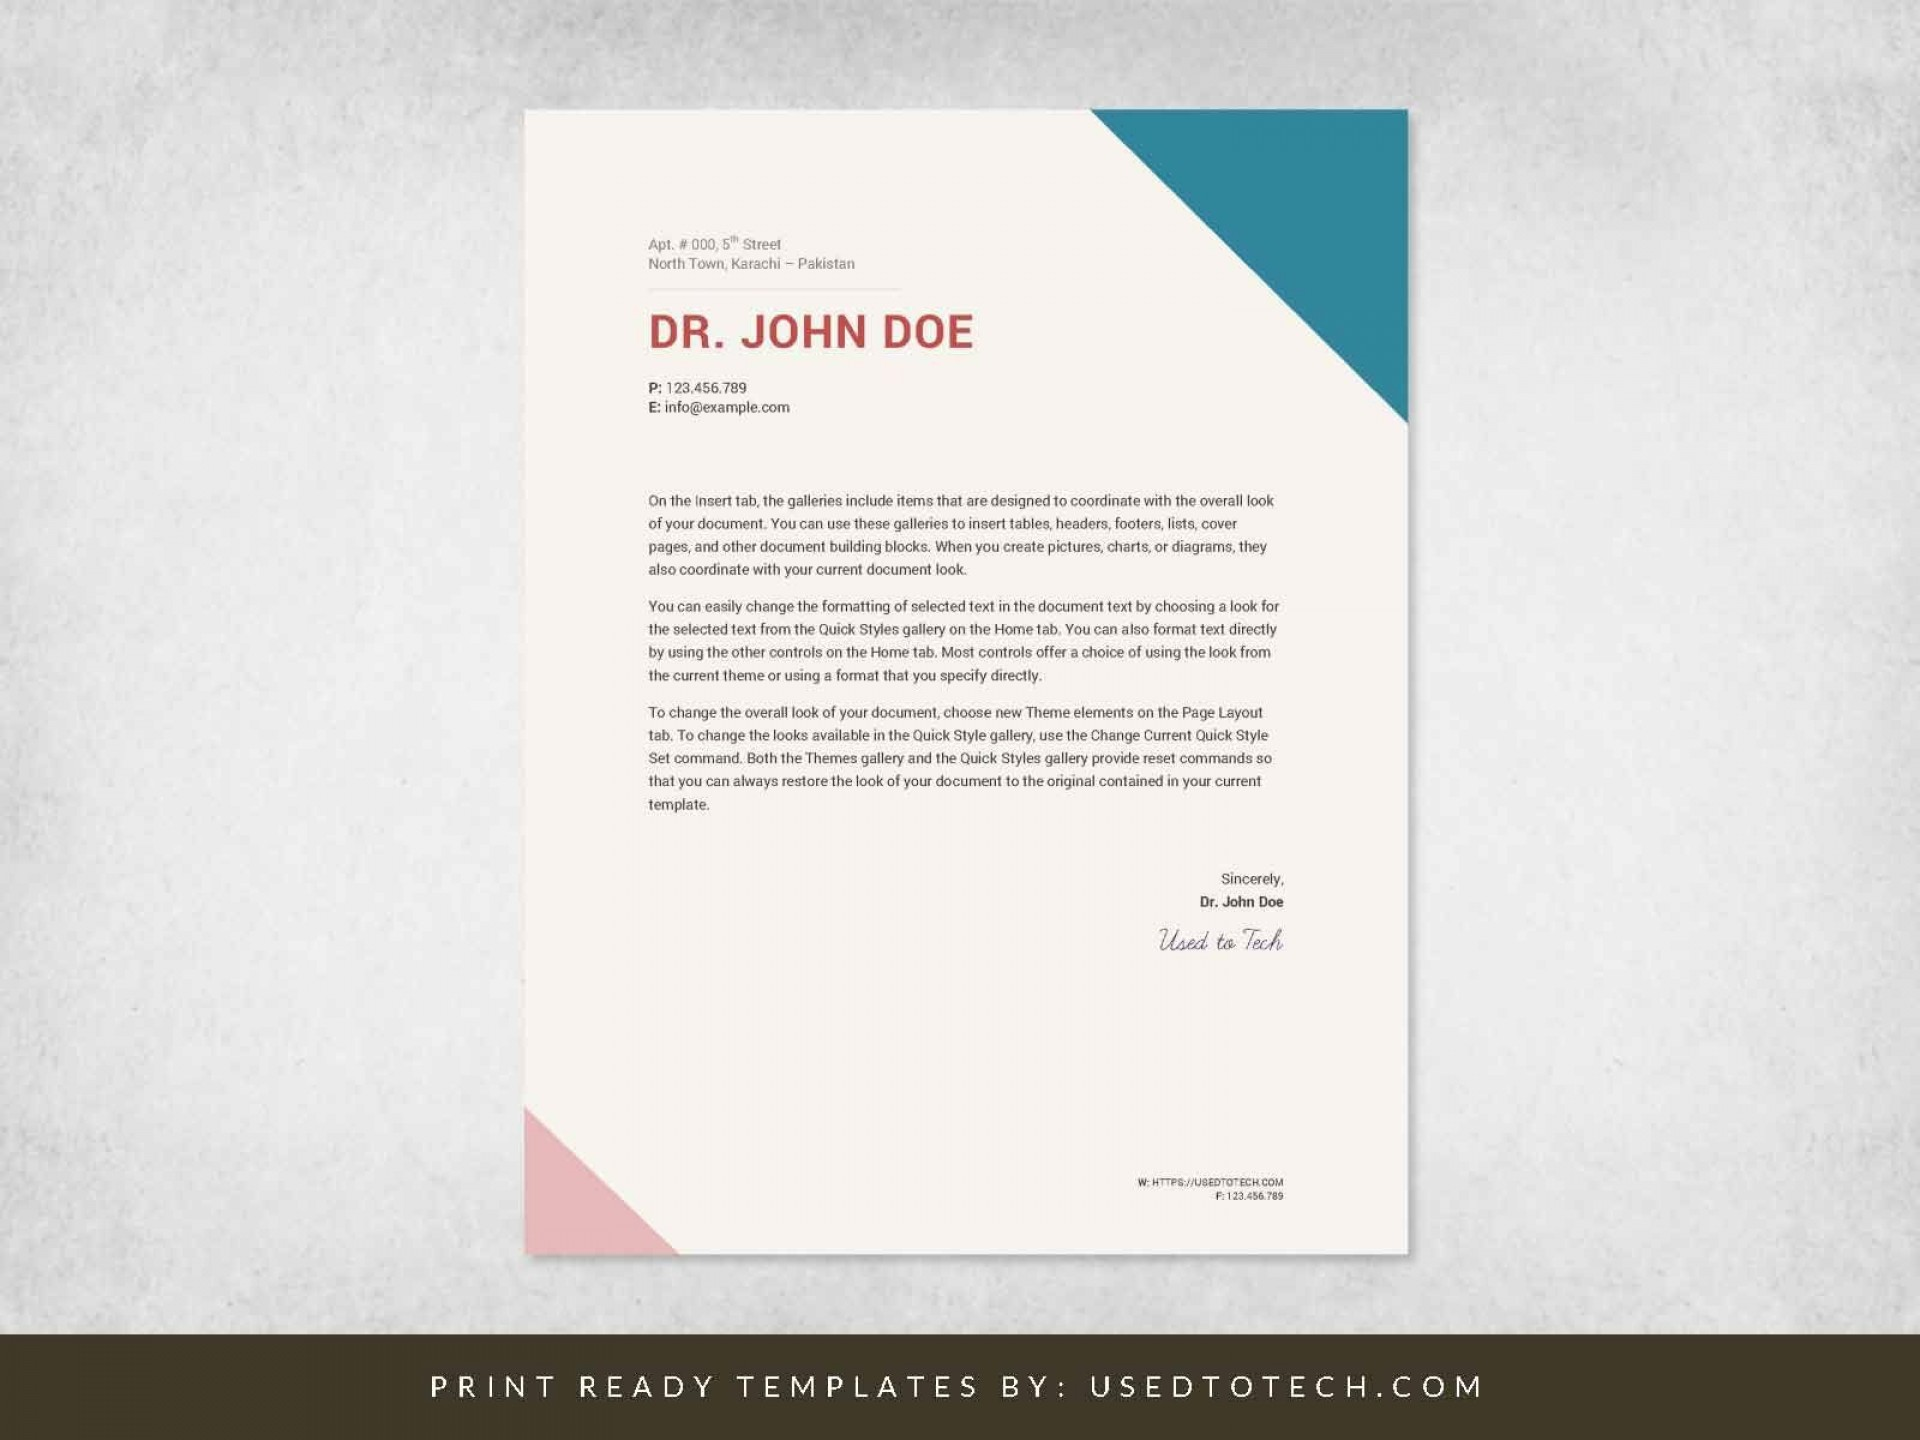 004 Stunning Letterhead Format In Word Free Download Pdf Example 1920